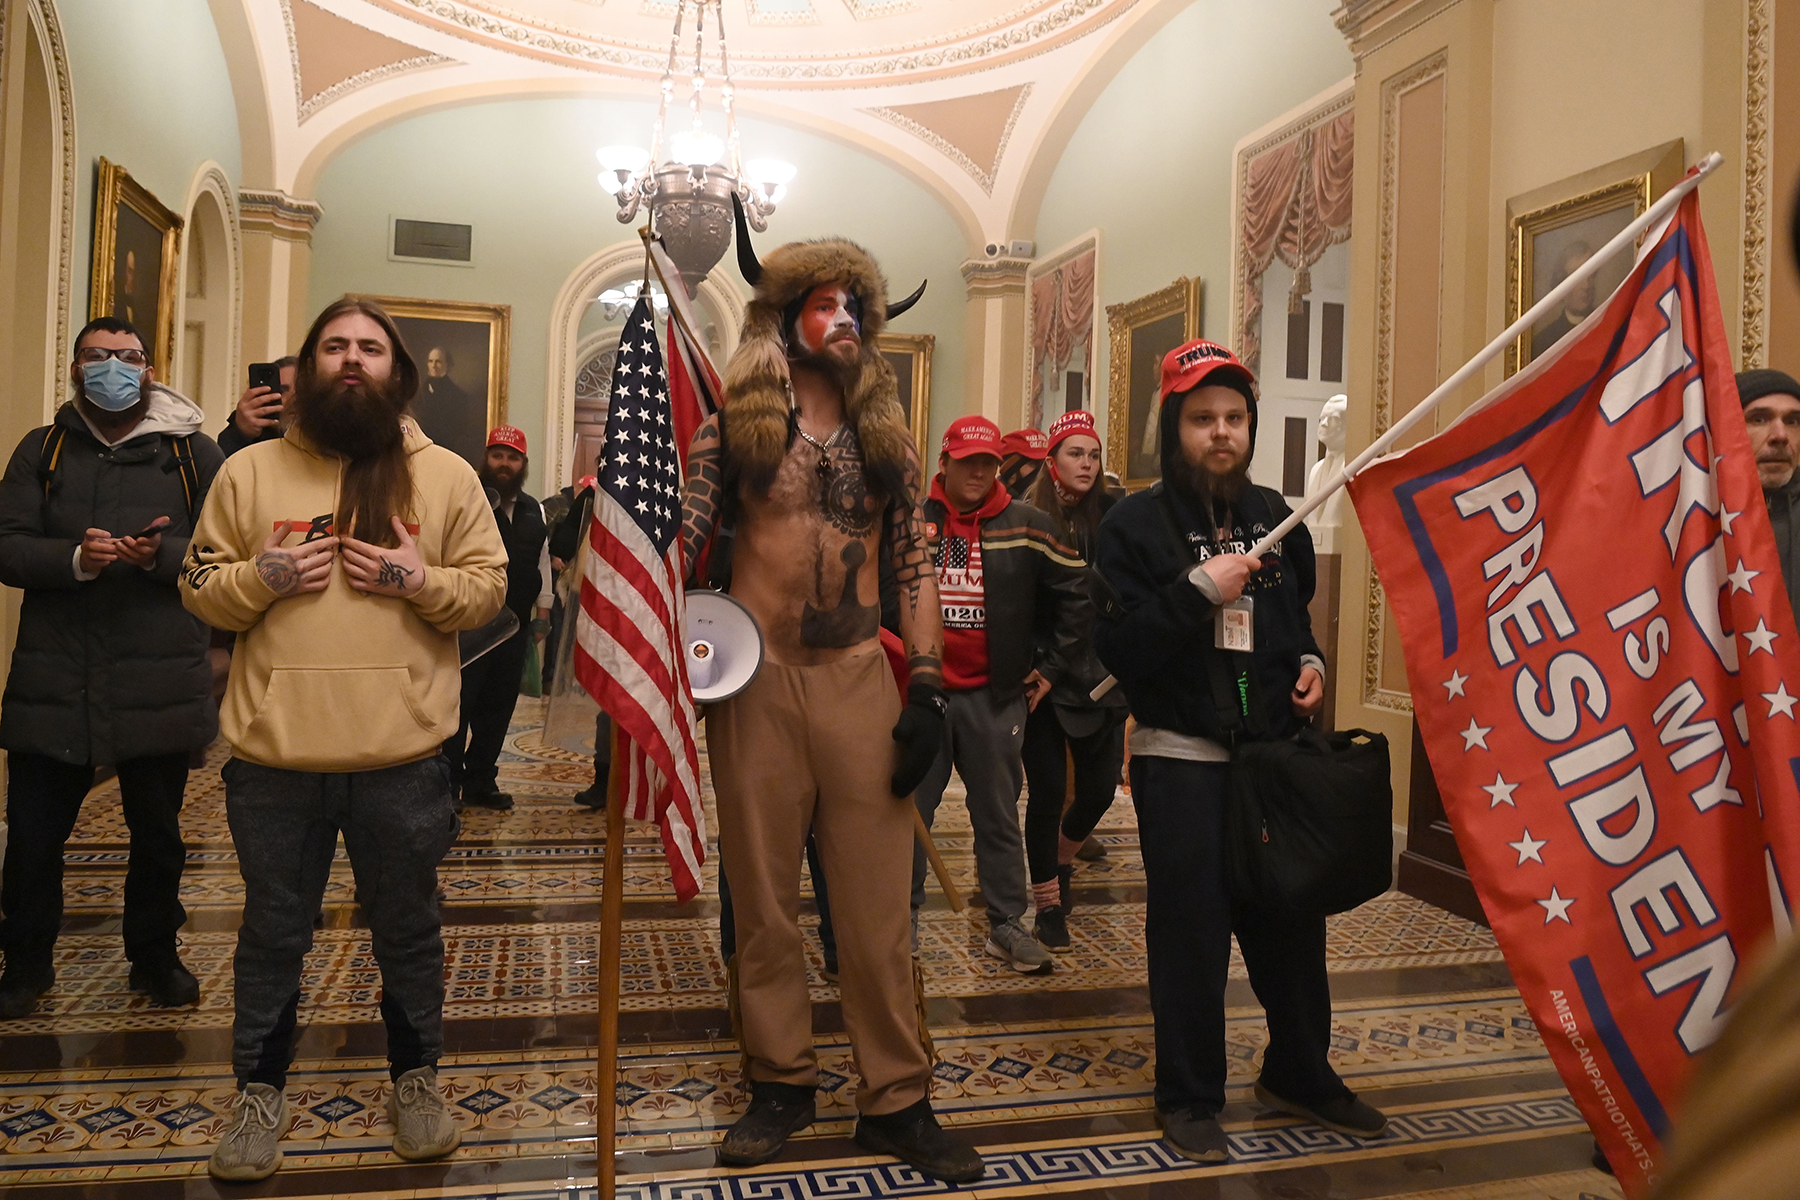 TOPSHOT - Supporters of US President Donald Trump enter the US Capitol on January 6, 2021, in Washington, DC. - Demonstrators breeched security and entered the Capitol as Congress debated the a 2020 presidential election Electoral Vote Certification. (Photo by Saul LOEB / AFP) (Photo by SAUL LOEB/AFP via Getty Images)